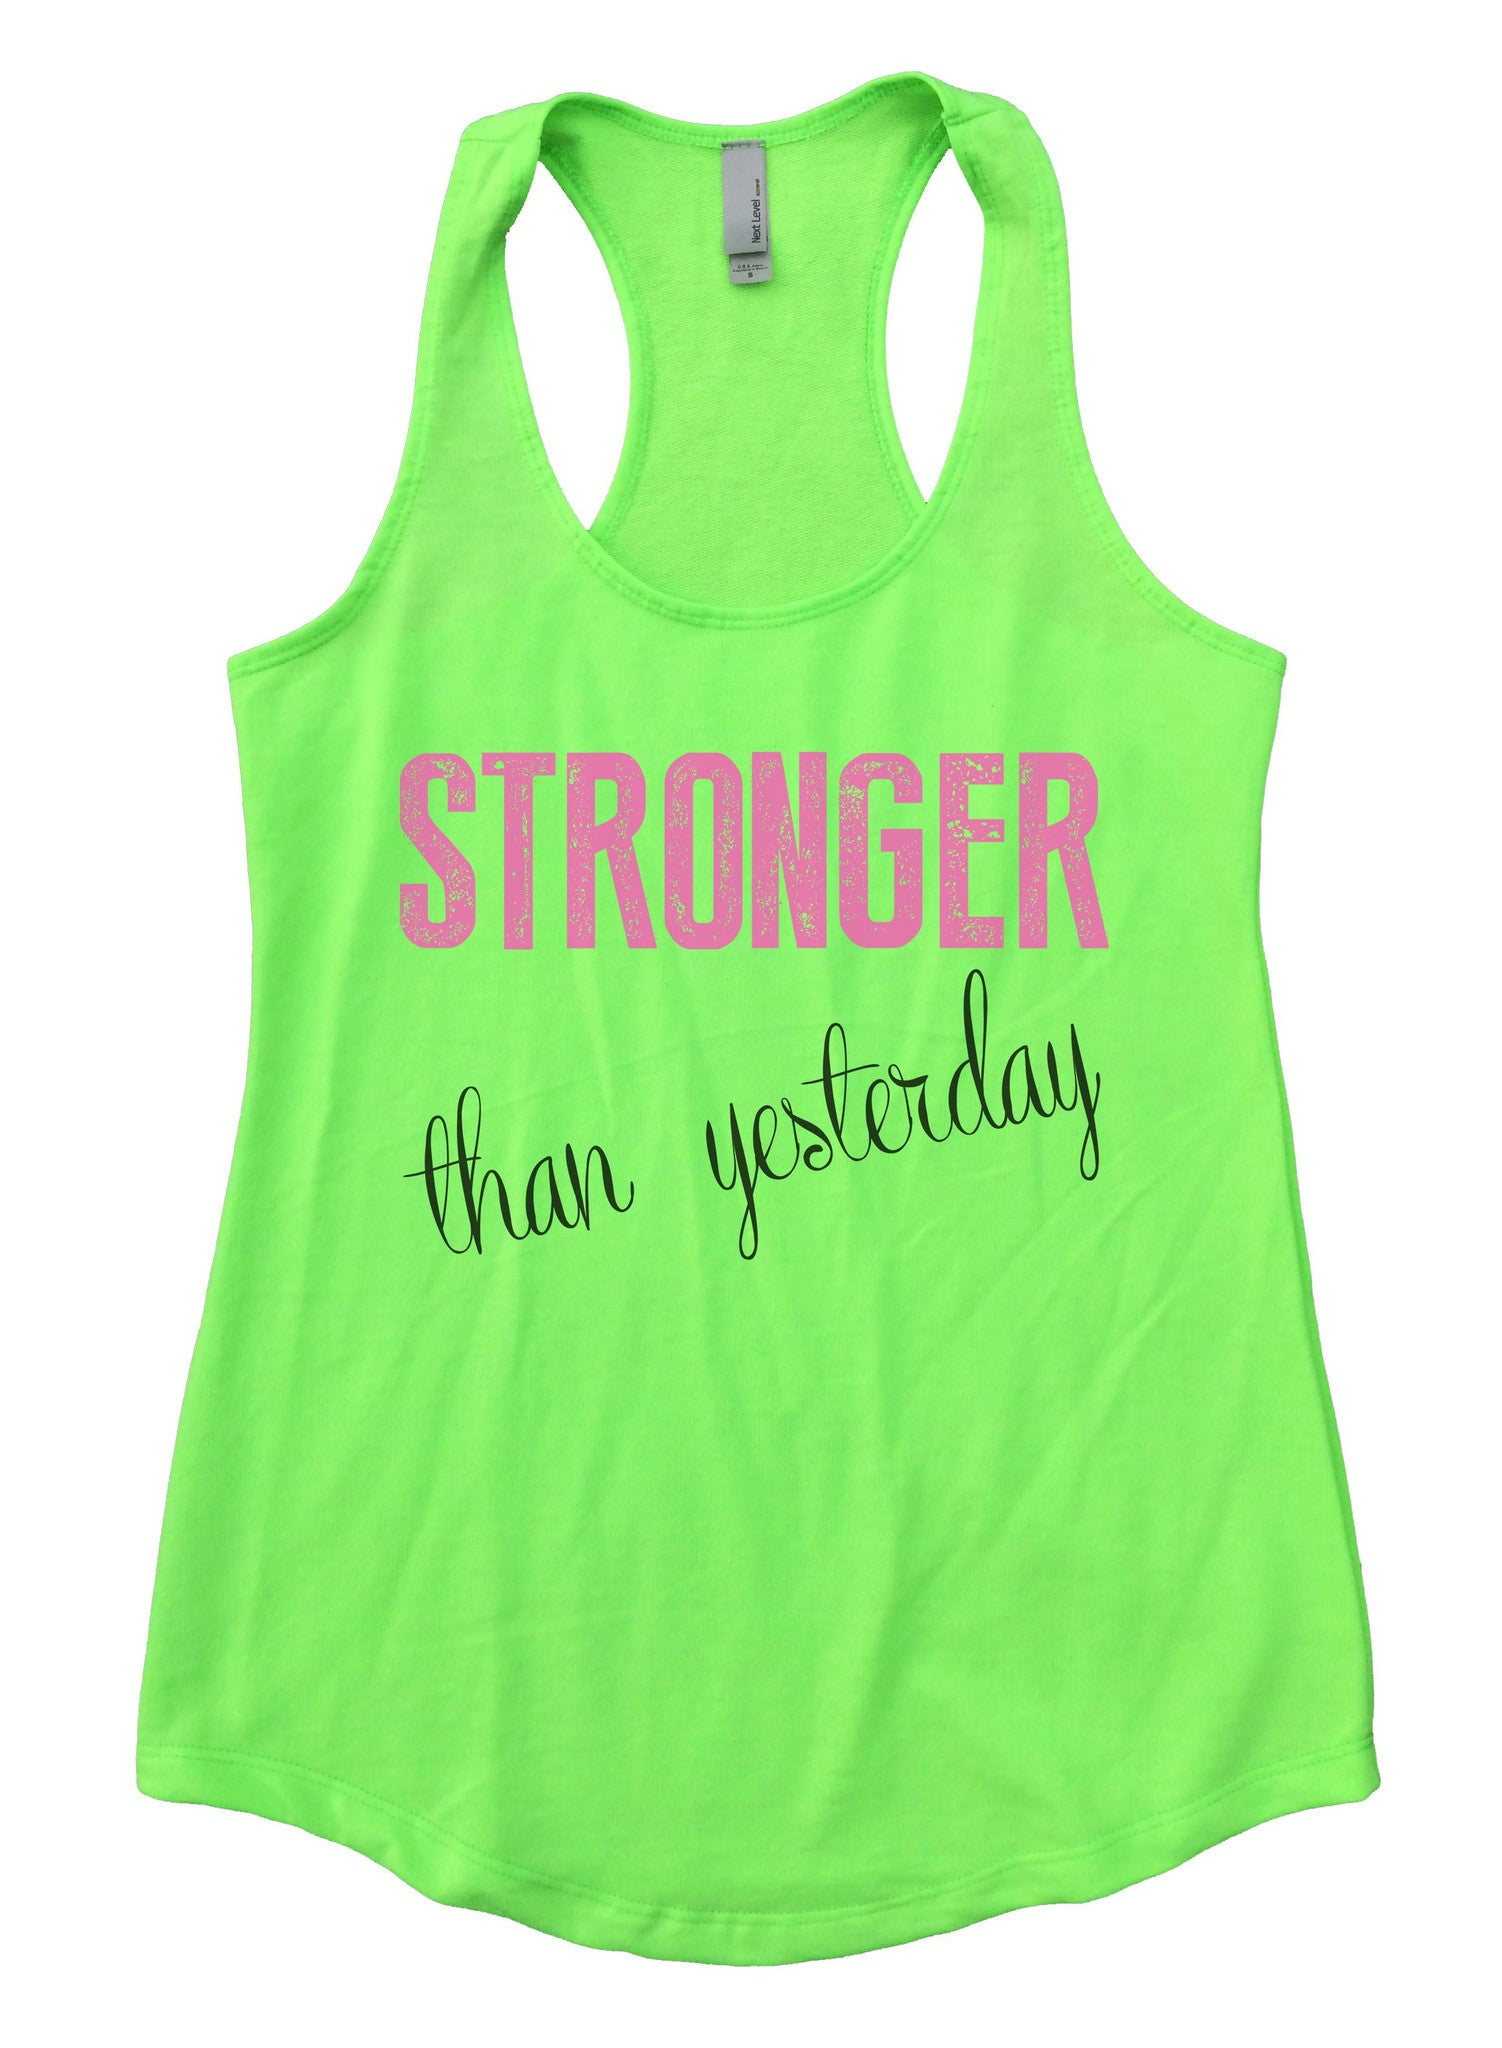 Stronger Than Yesterday Womens Workout Tank Top F768 - Funny Shirts Tank Tops Burnouts and Triblends  - 2